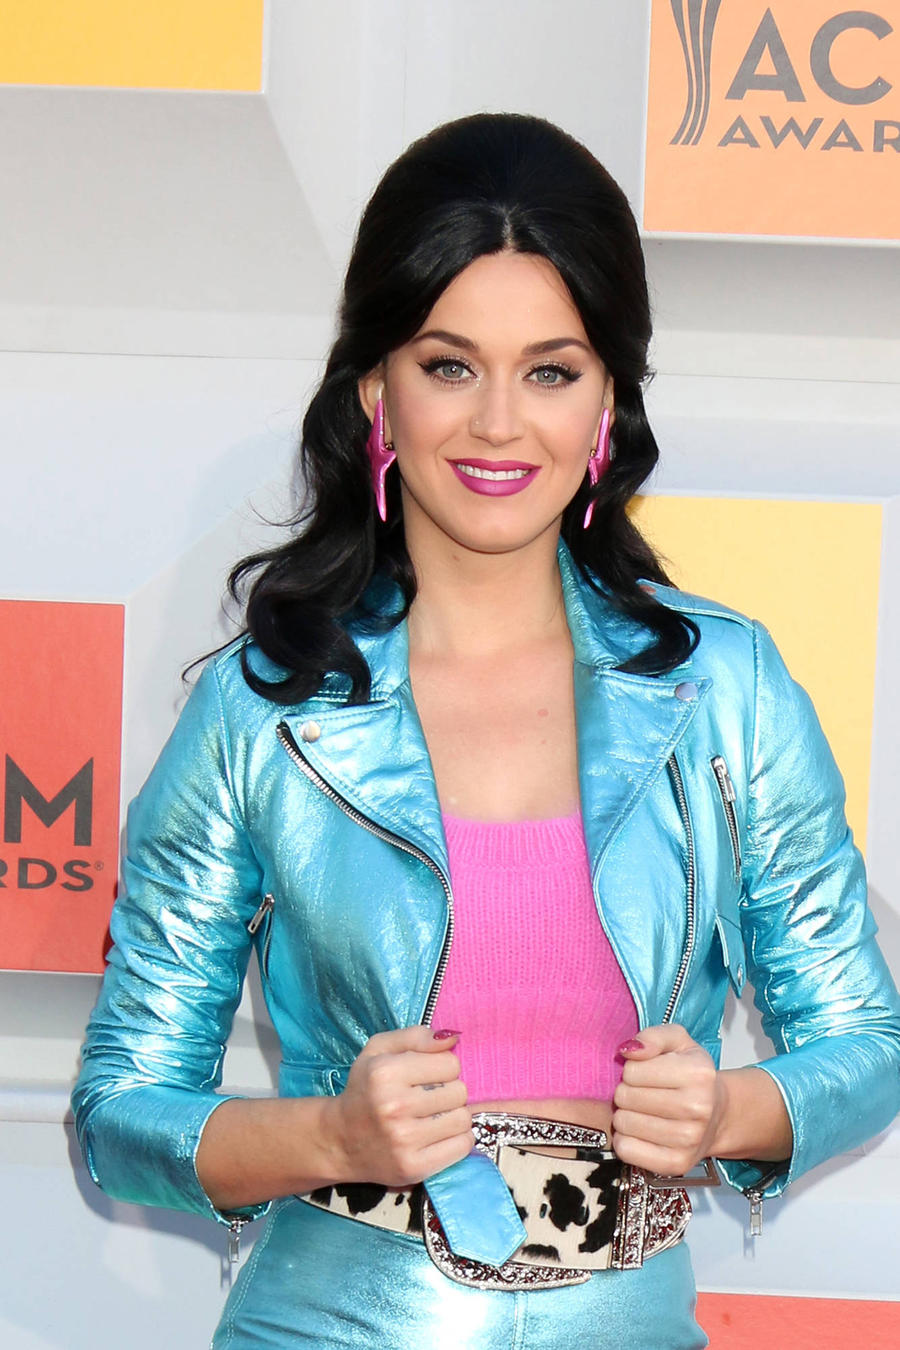 Katy Perry: 'I Can Never Match Lady Gaga's Met Ball Style'